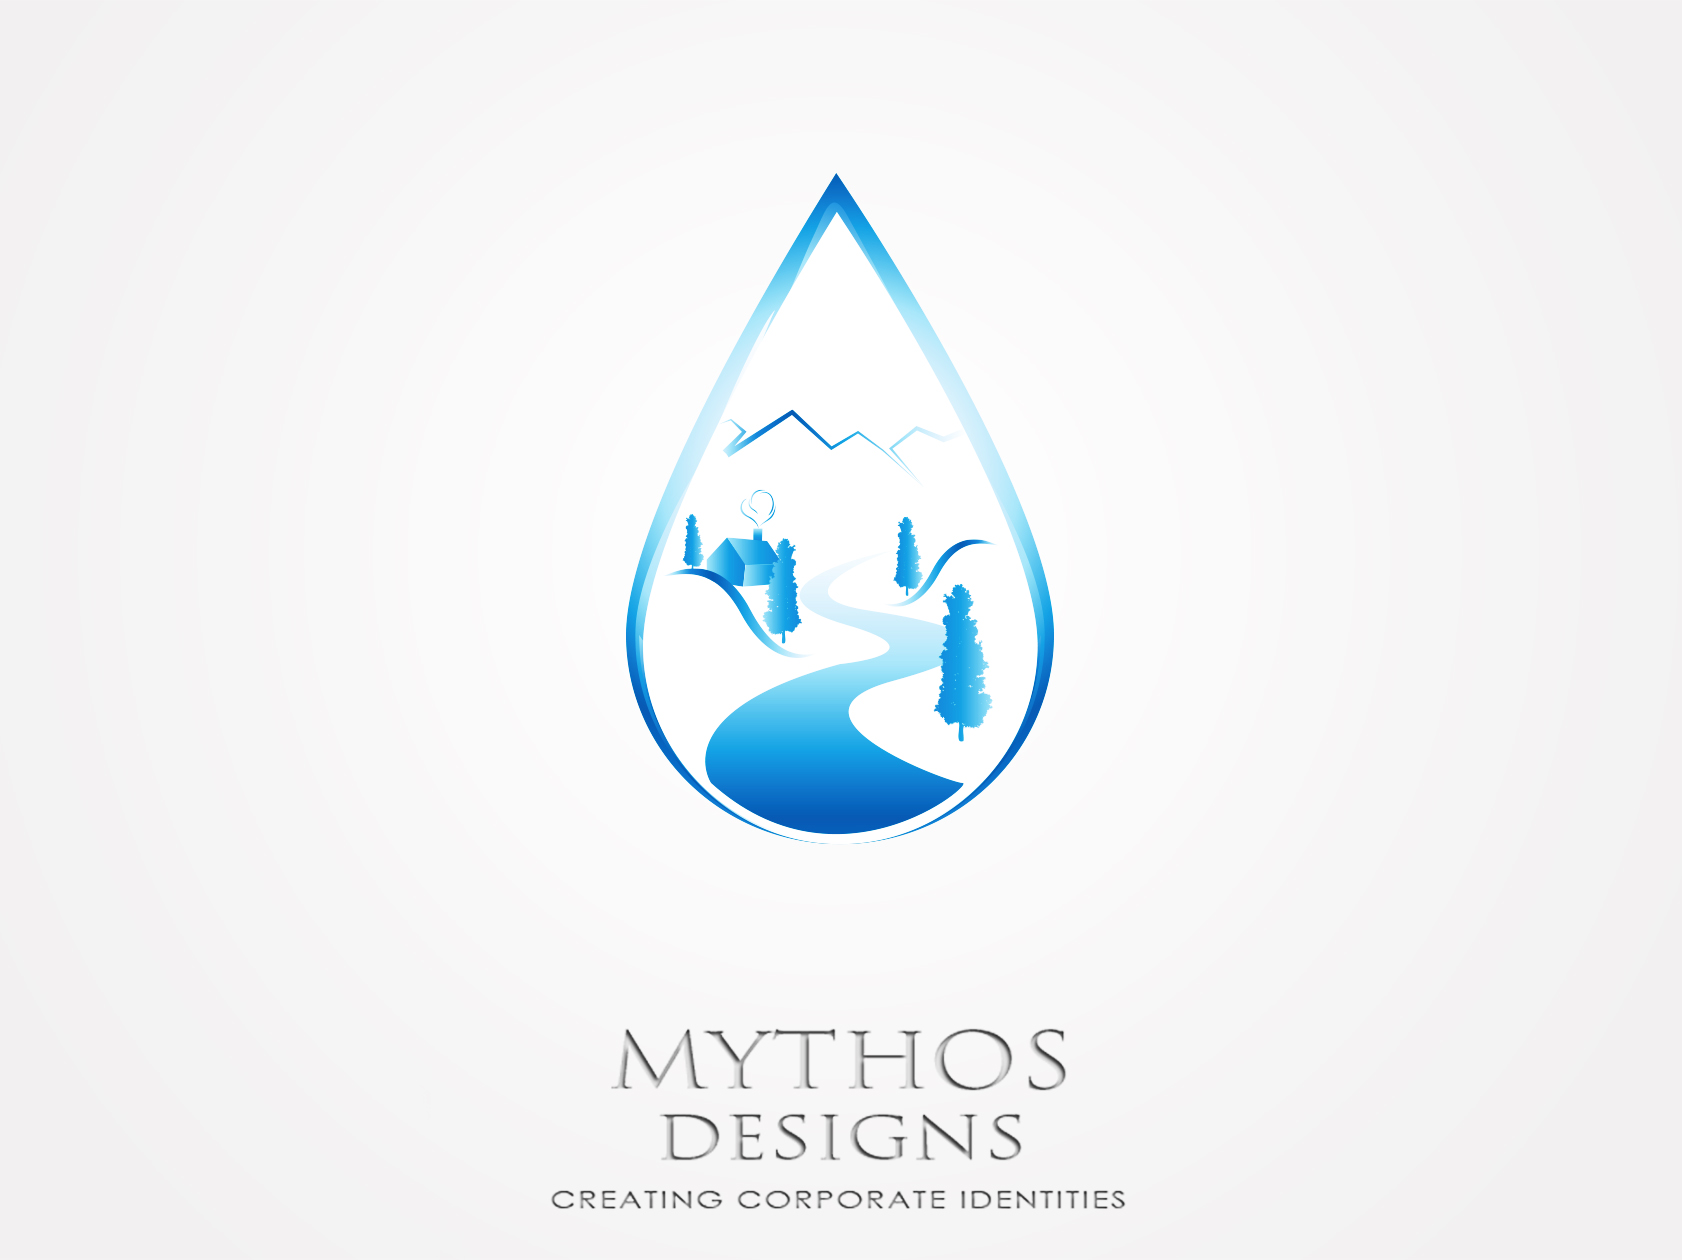 Logo Design by Mythos Designs - Entry No. 24 in the Logo Design Contest Manitoba Conservation Districts Logo Design.